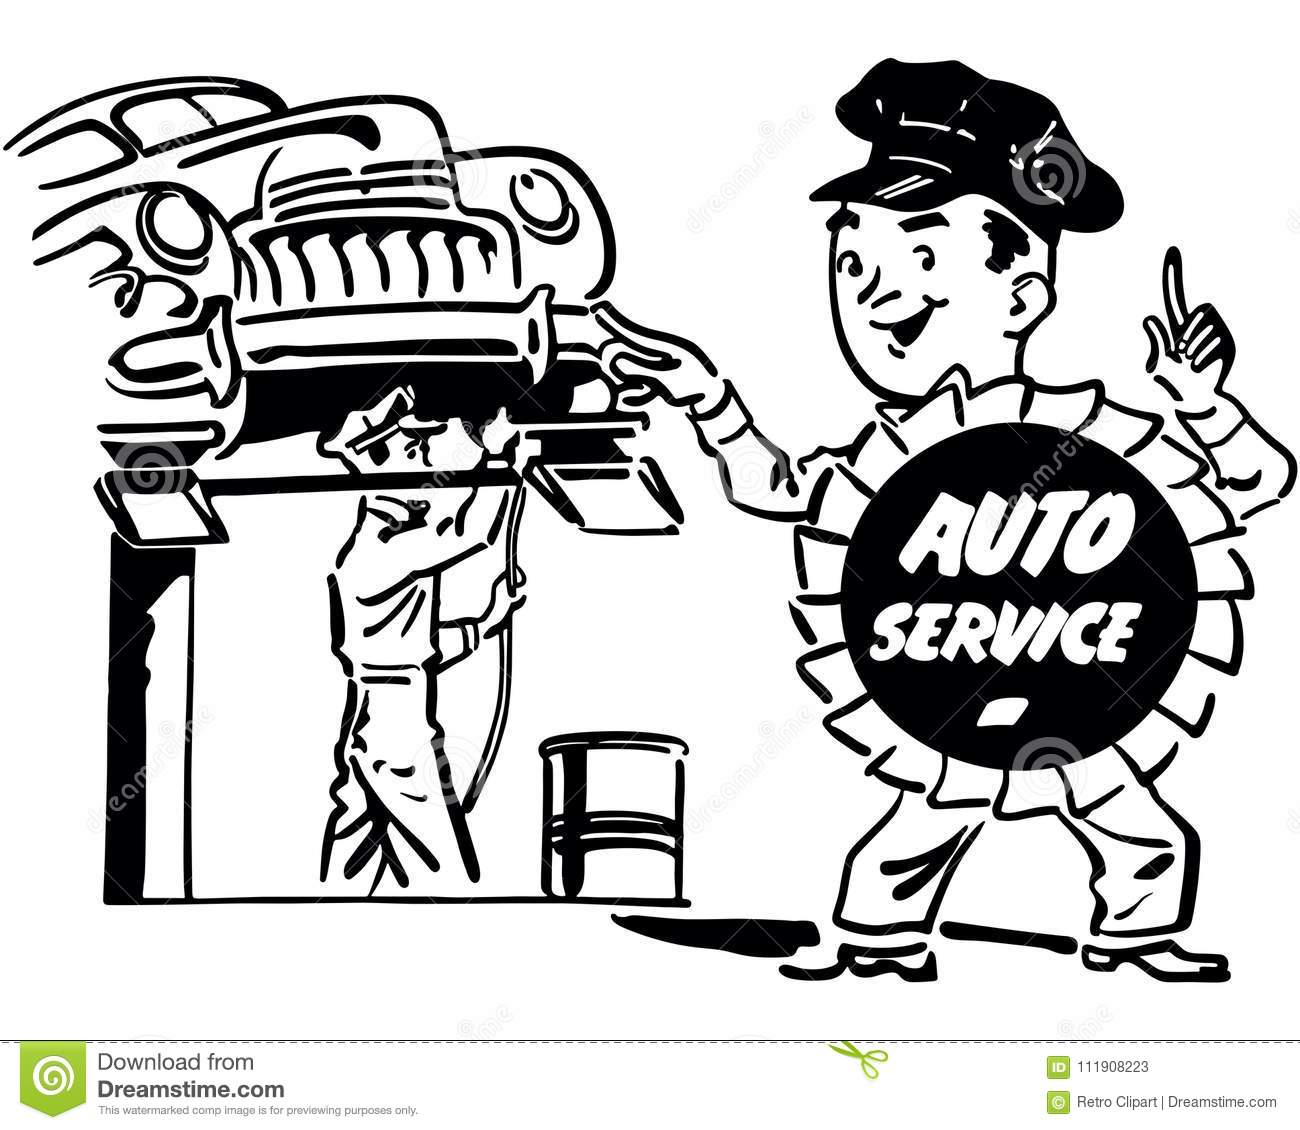 automobile repair shop stock vector illustration of 1950s 111908223